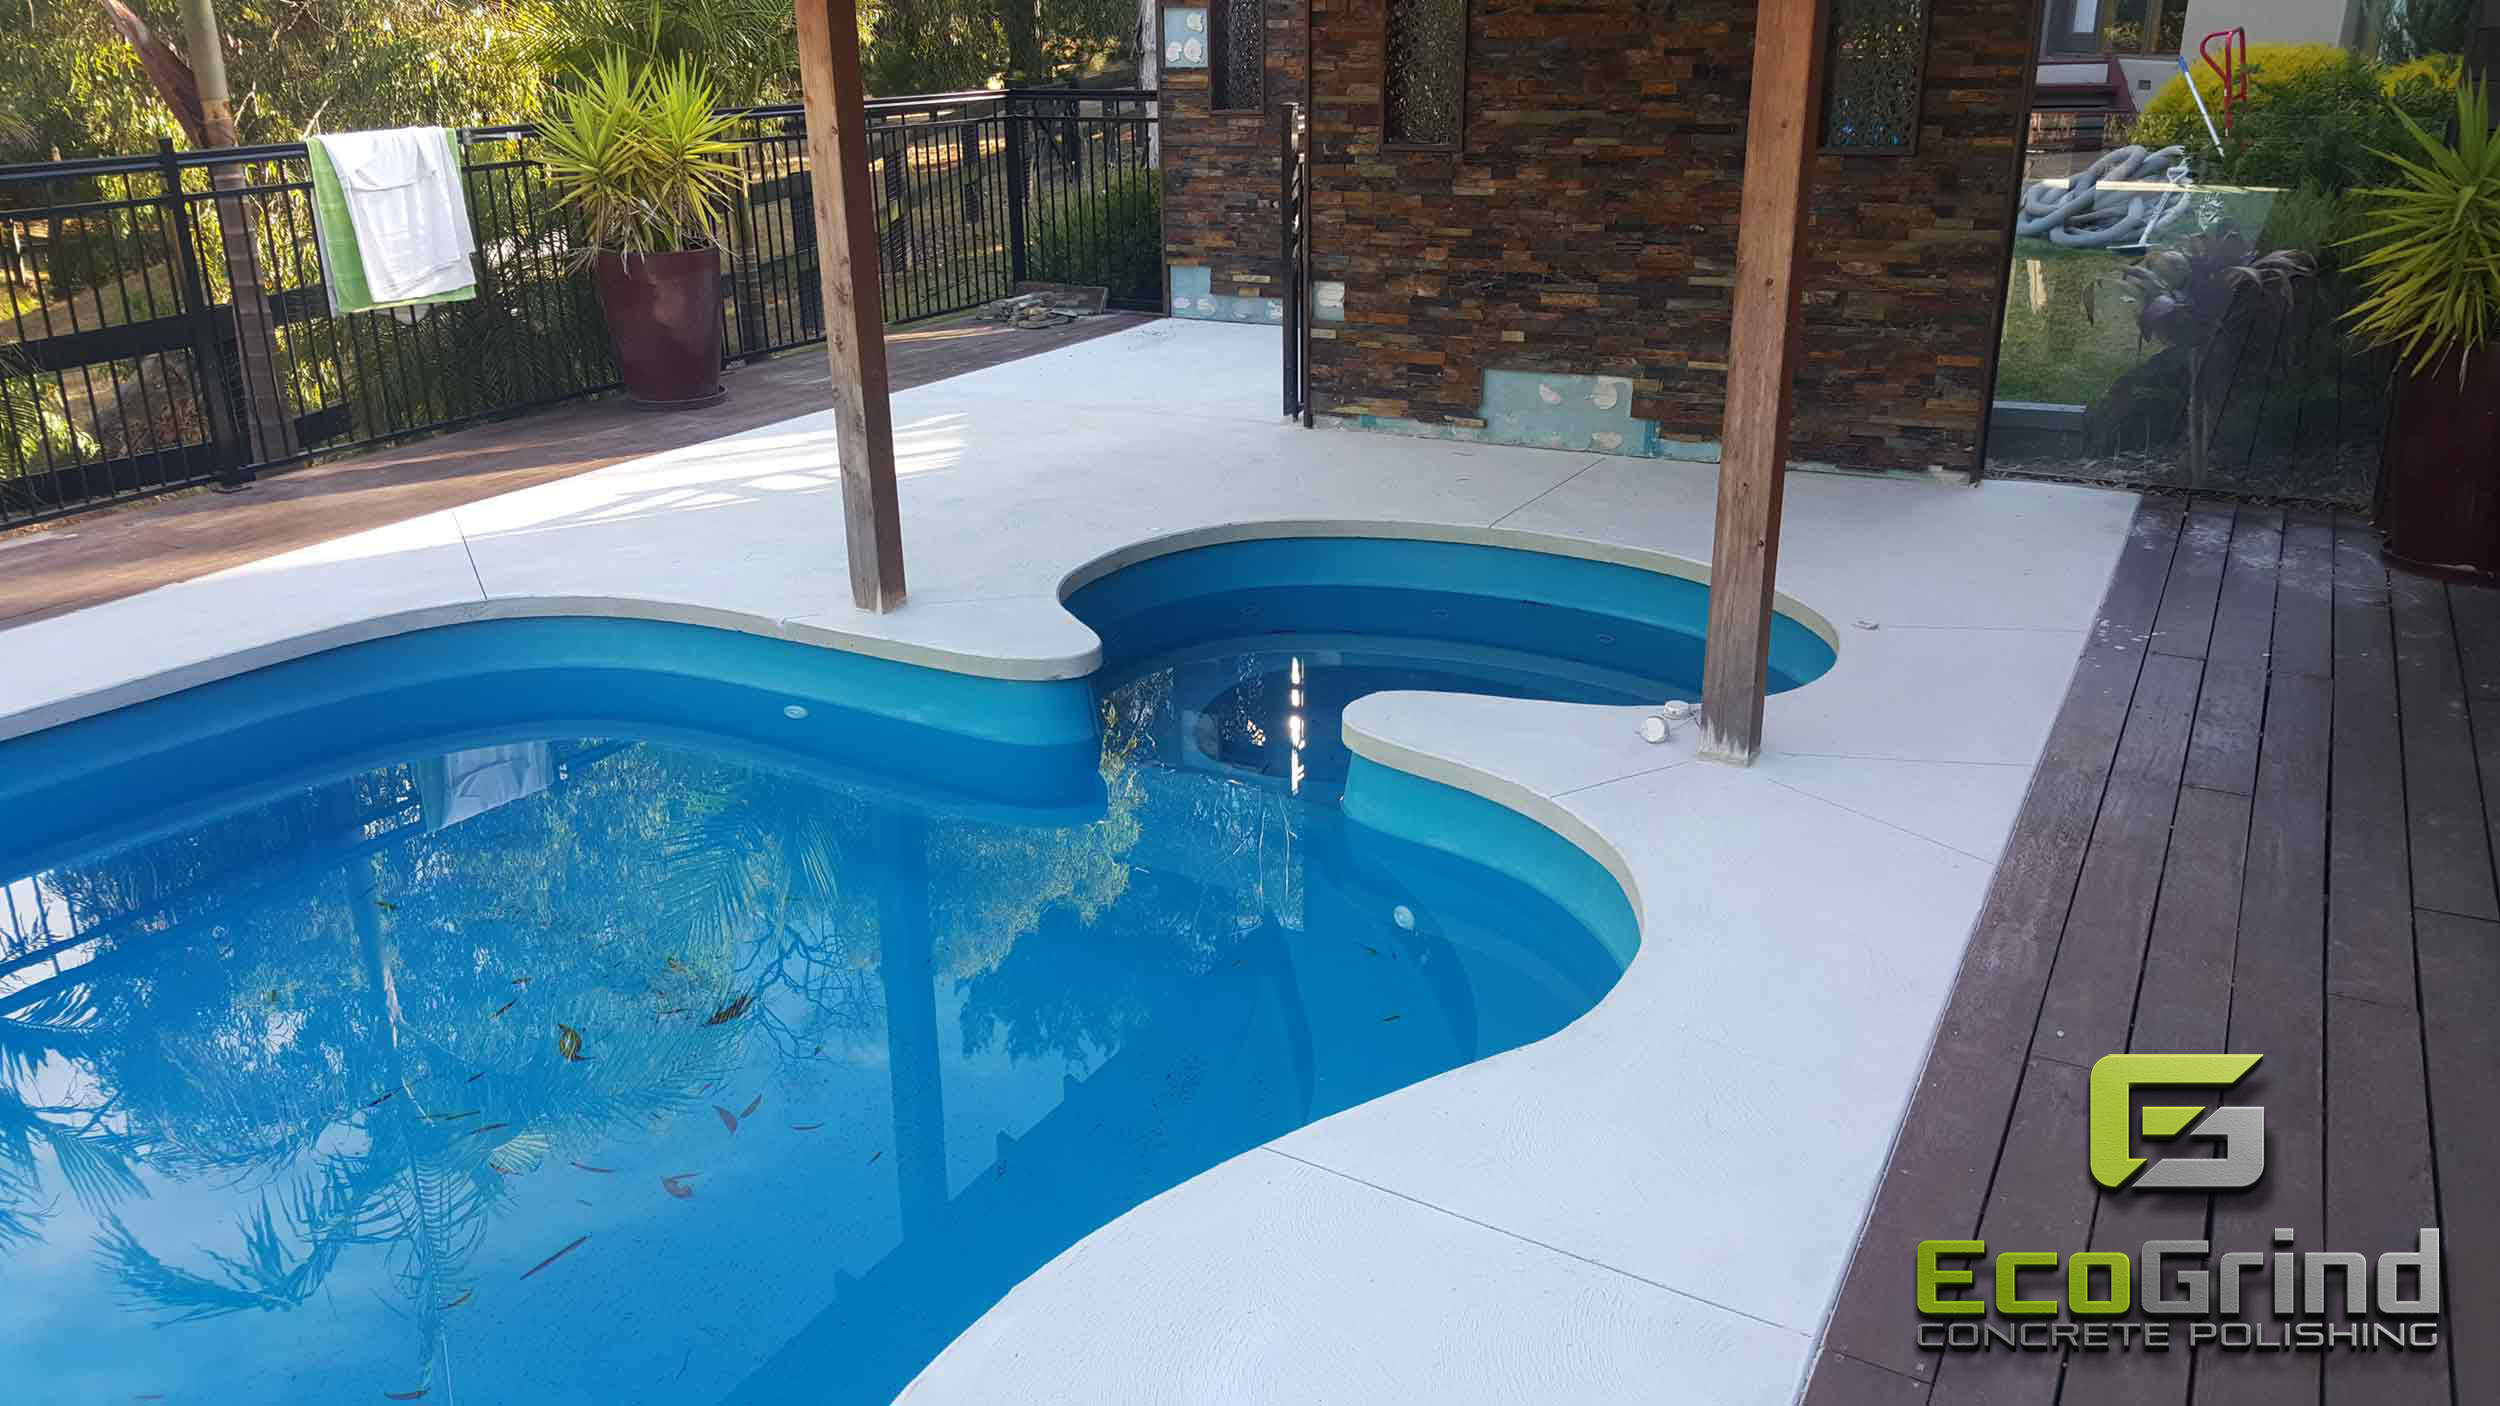 Keep Watching This Space For More On How To Use Polished Concrete To Make  Your Backyard Summer Ready.